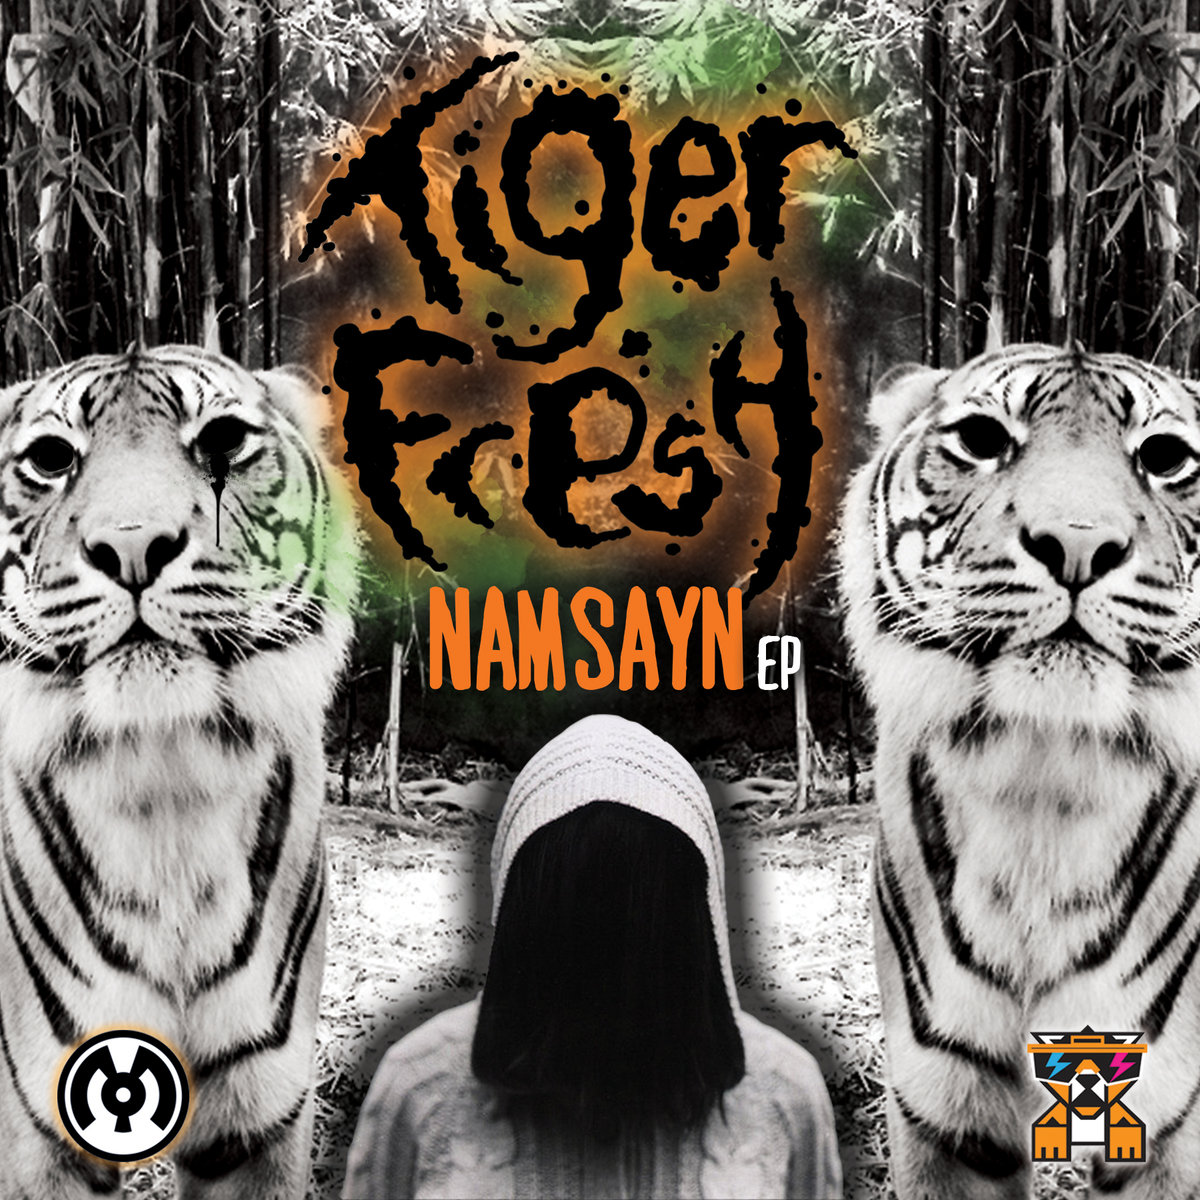 Tiger Fresh - Changes (Bedrockk Remix) @ 'Namsayn' album (electronic, dubstep)